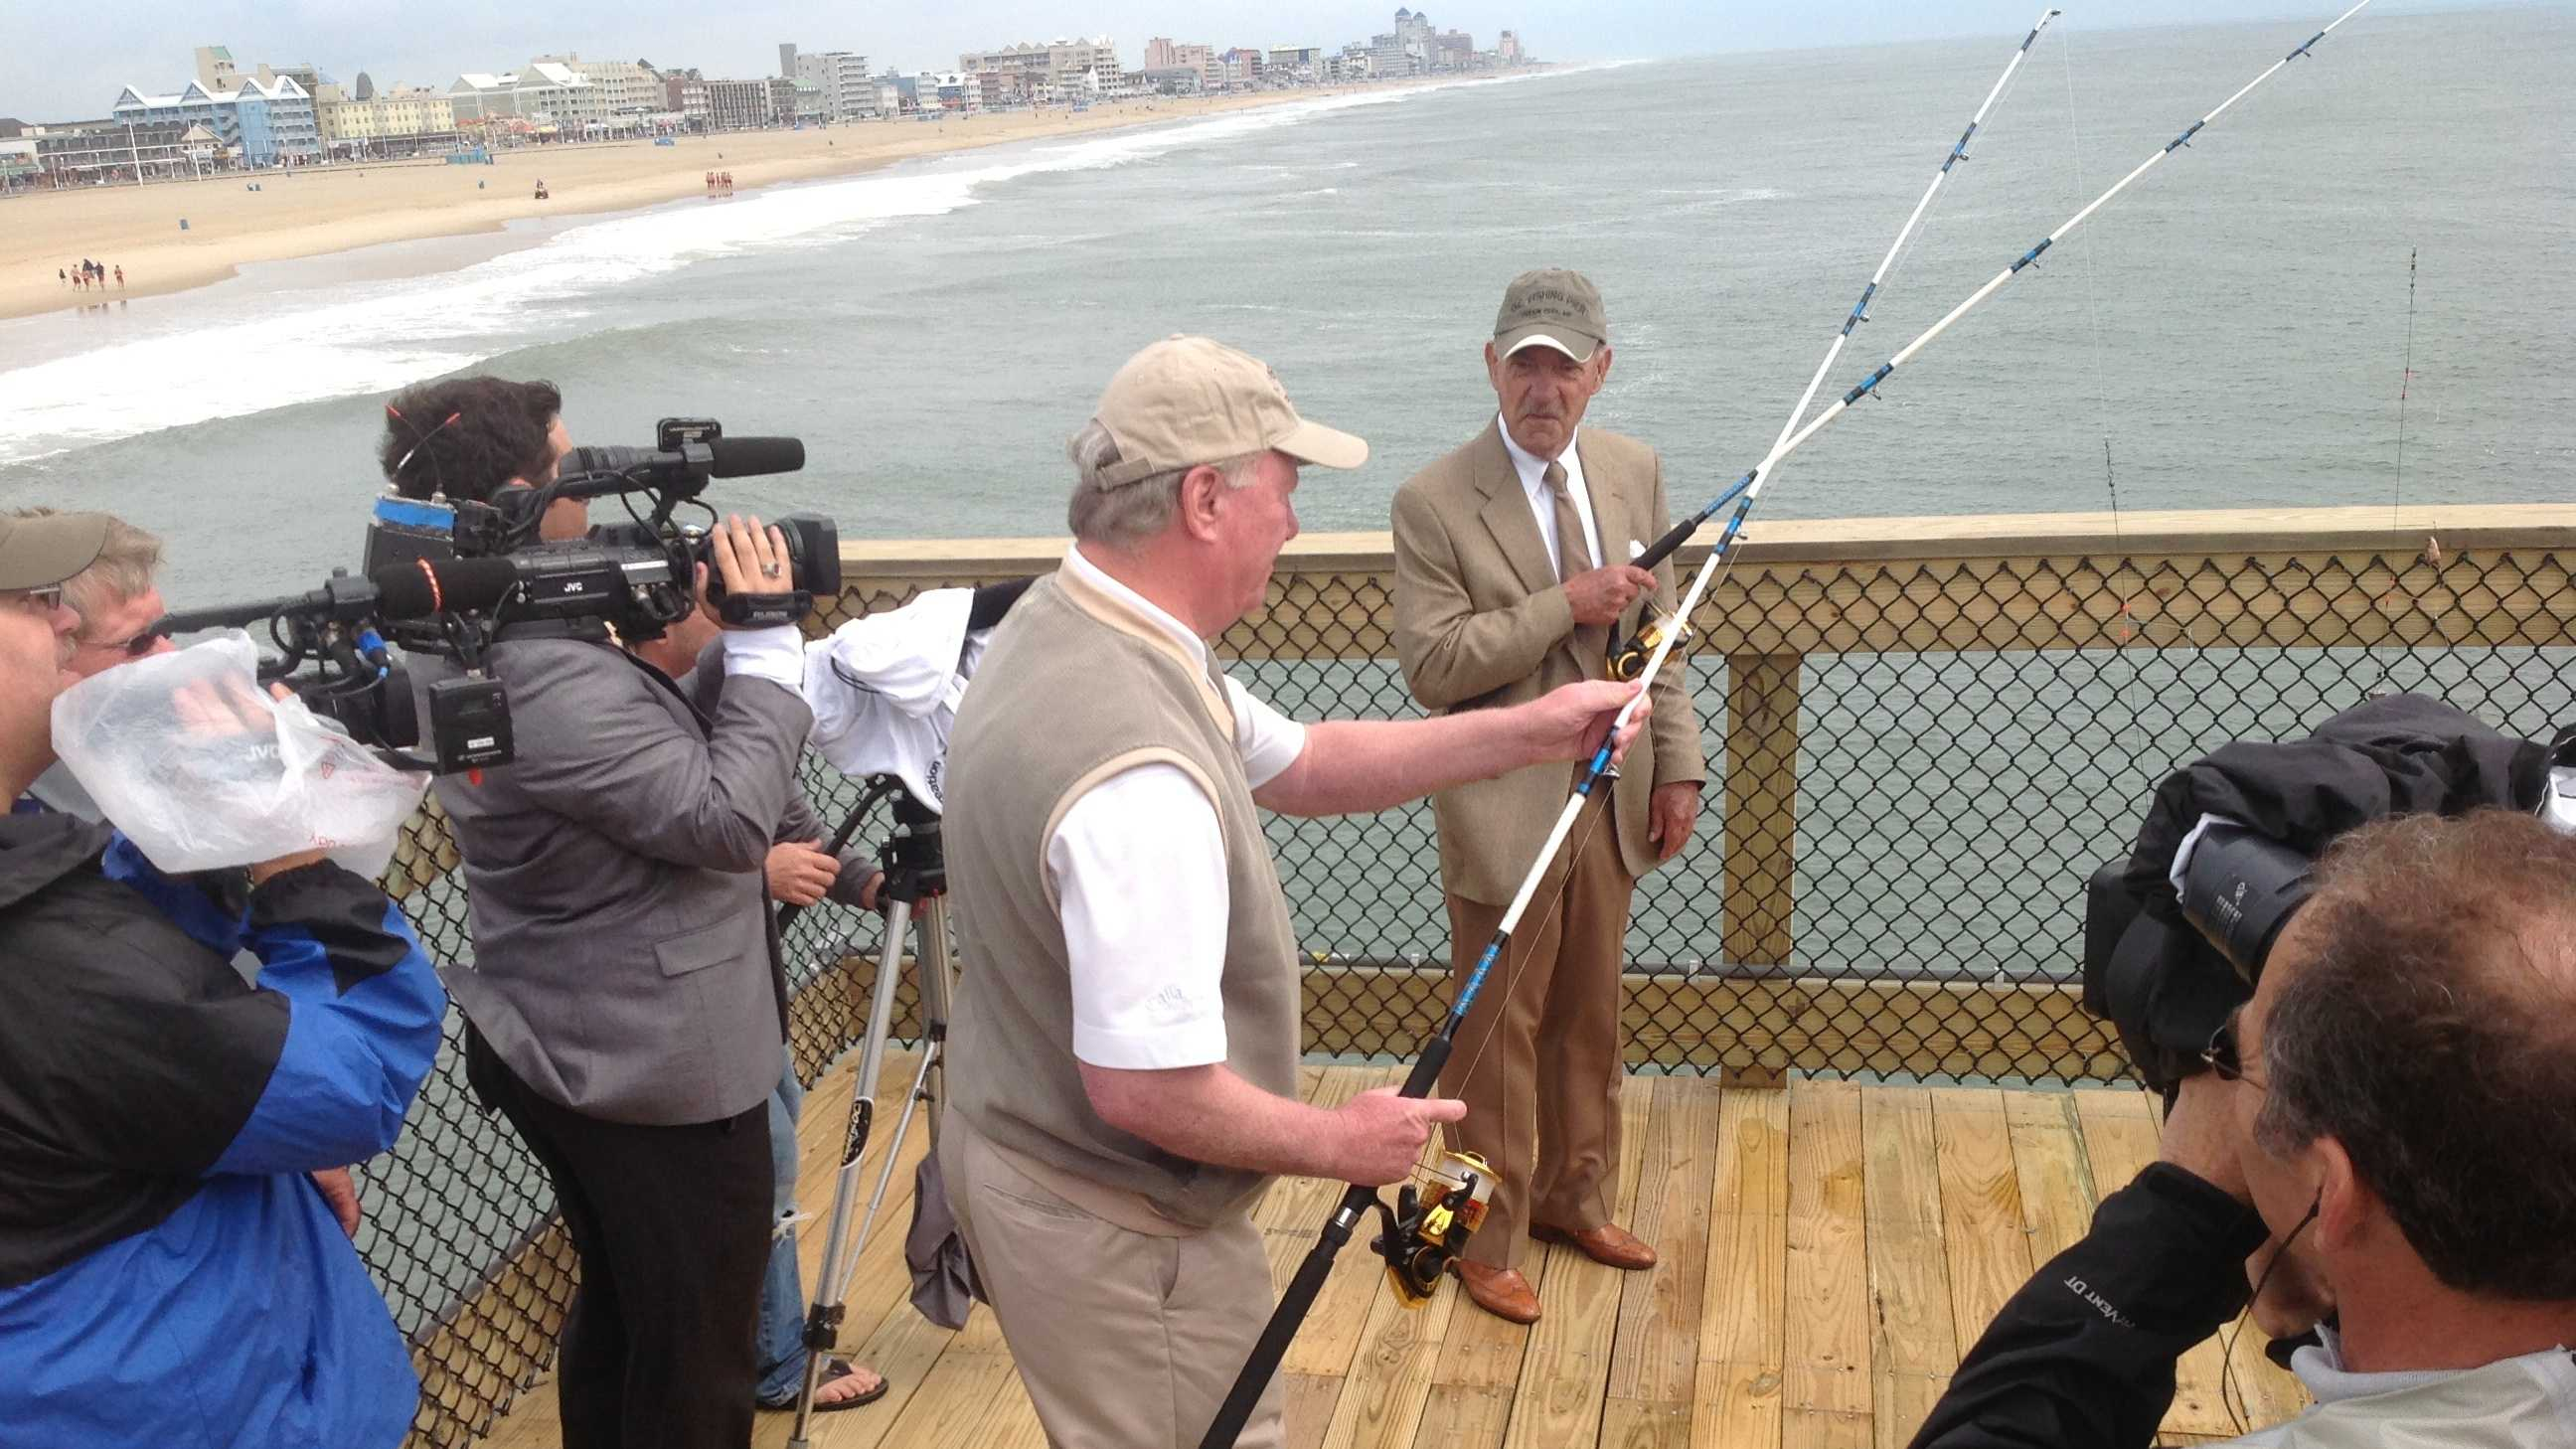 Ocean City Mayor Rick Meehan casts the first line off the restored fishing pier that was damaged during Hurricane Sandy.